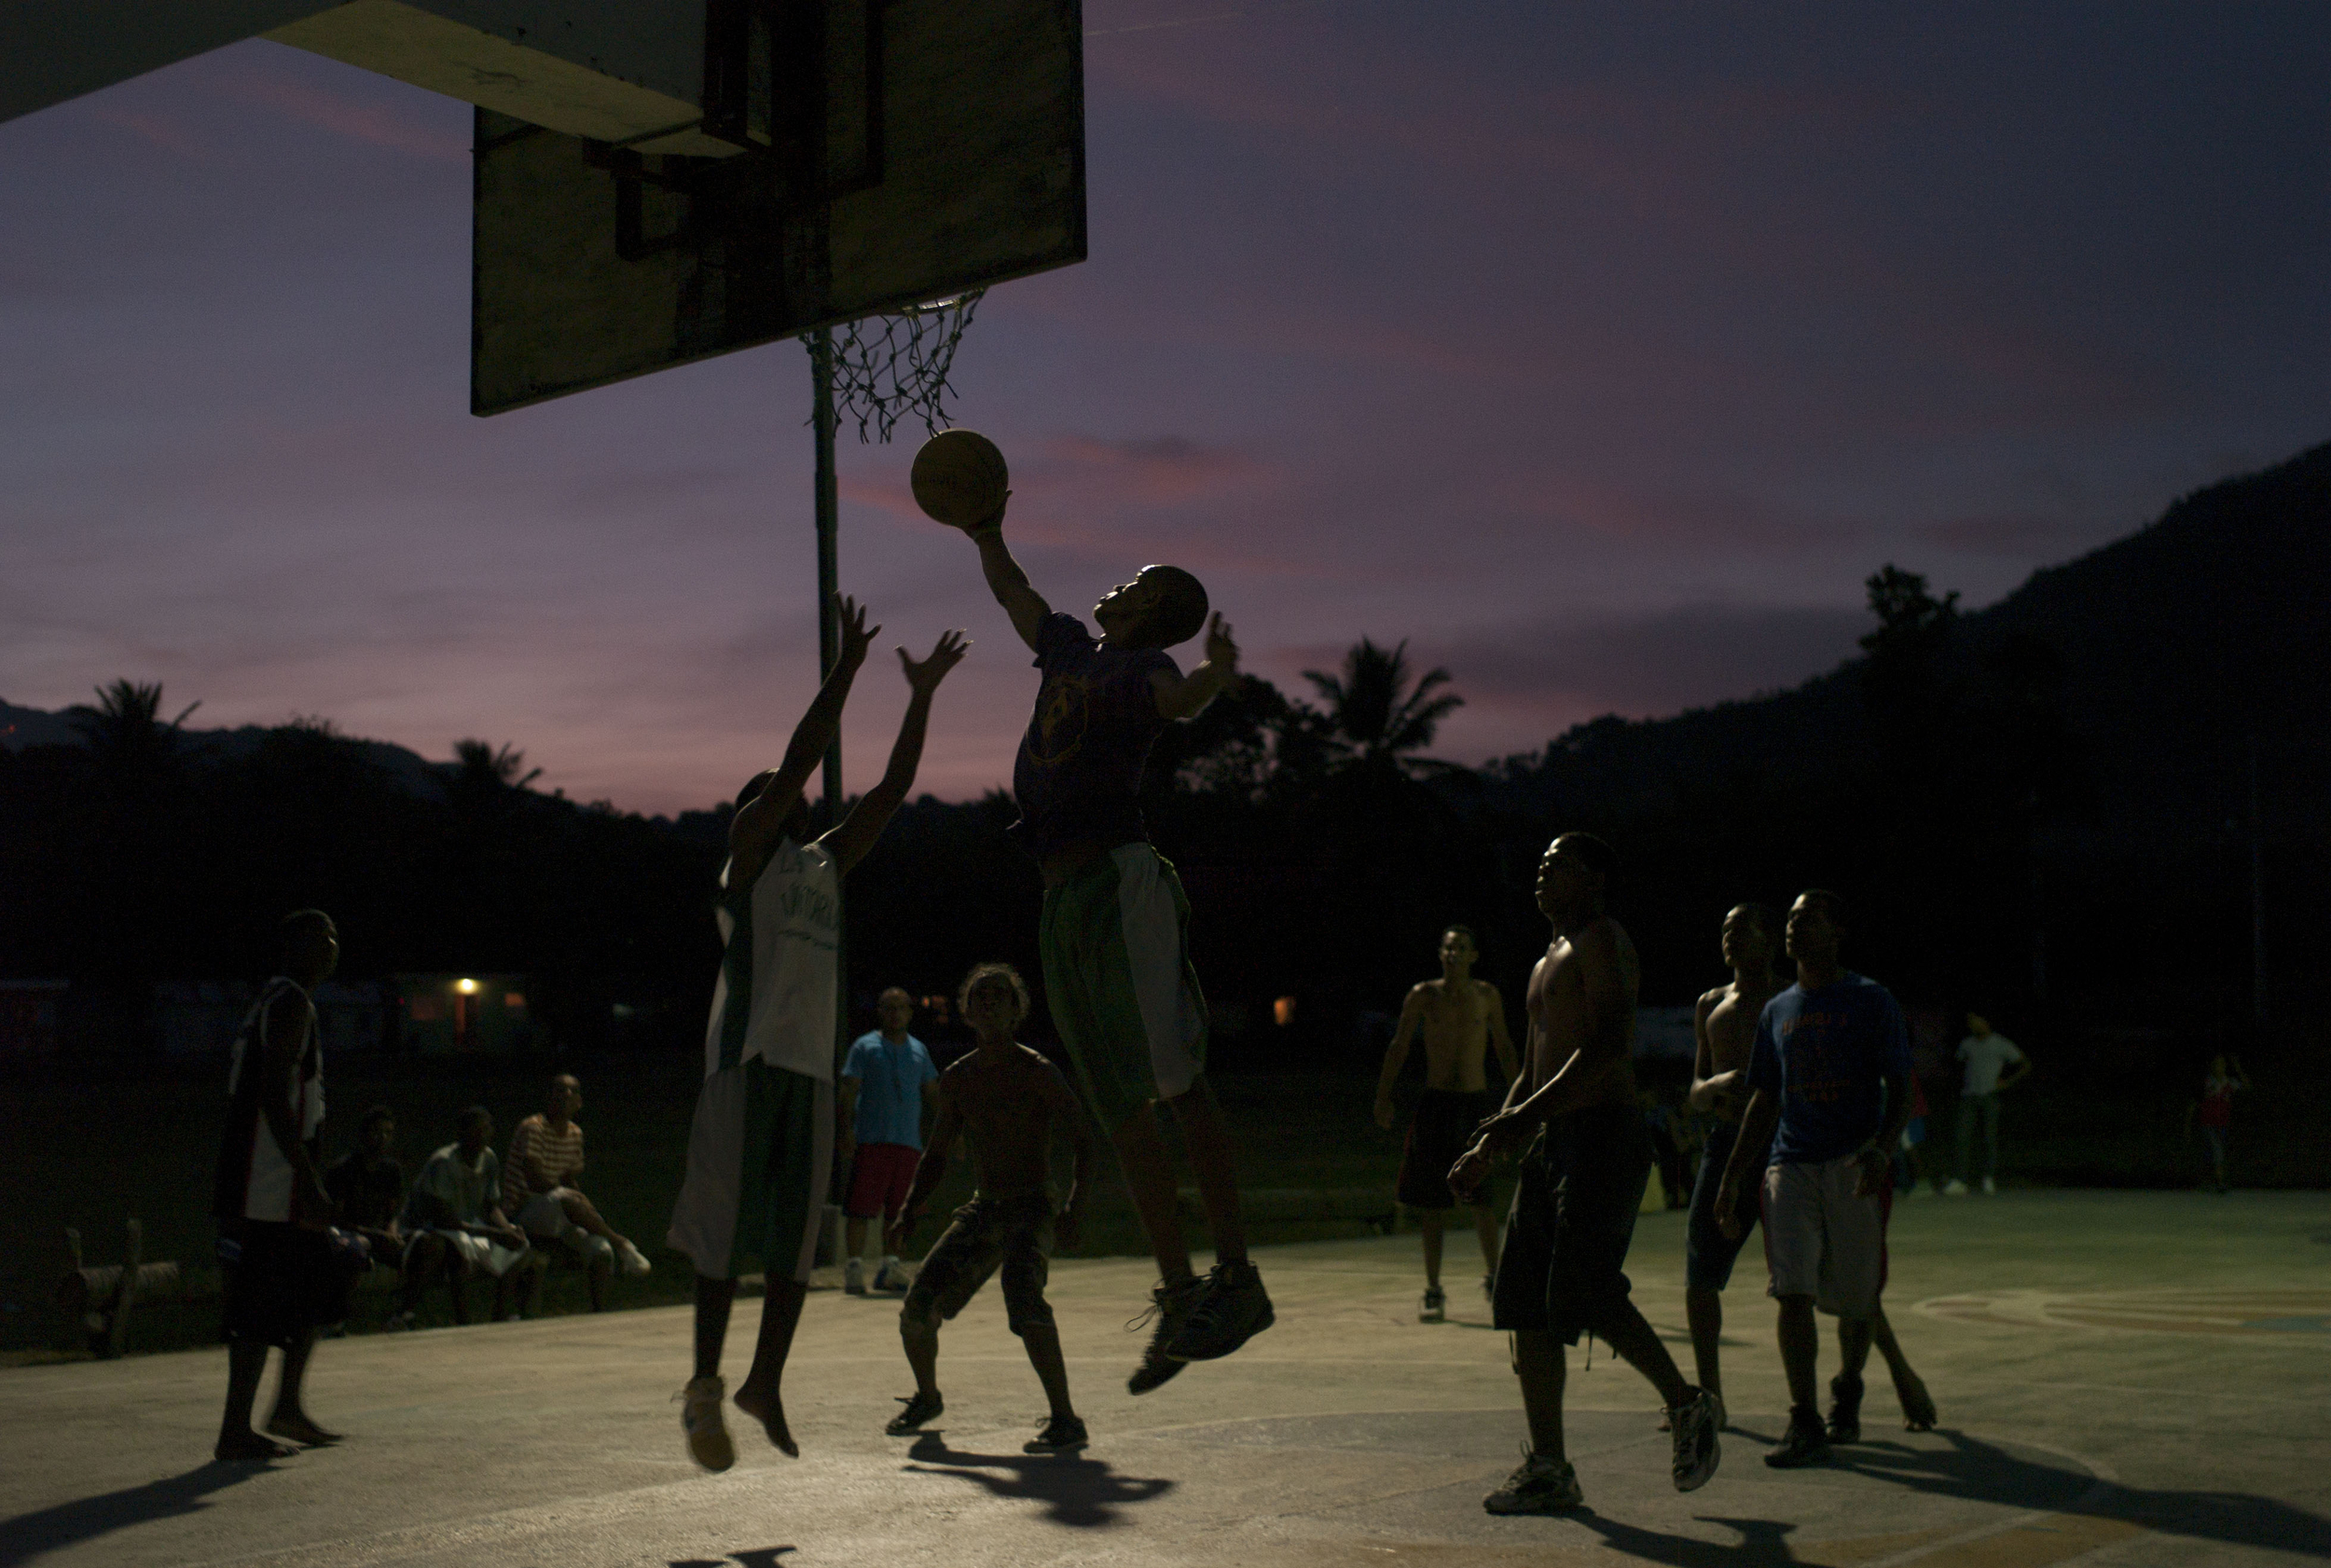 Pickup basketball,  araiso, Dominican Republic.